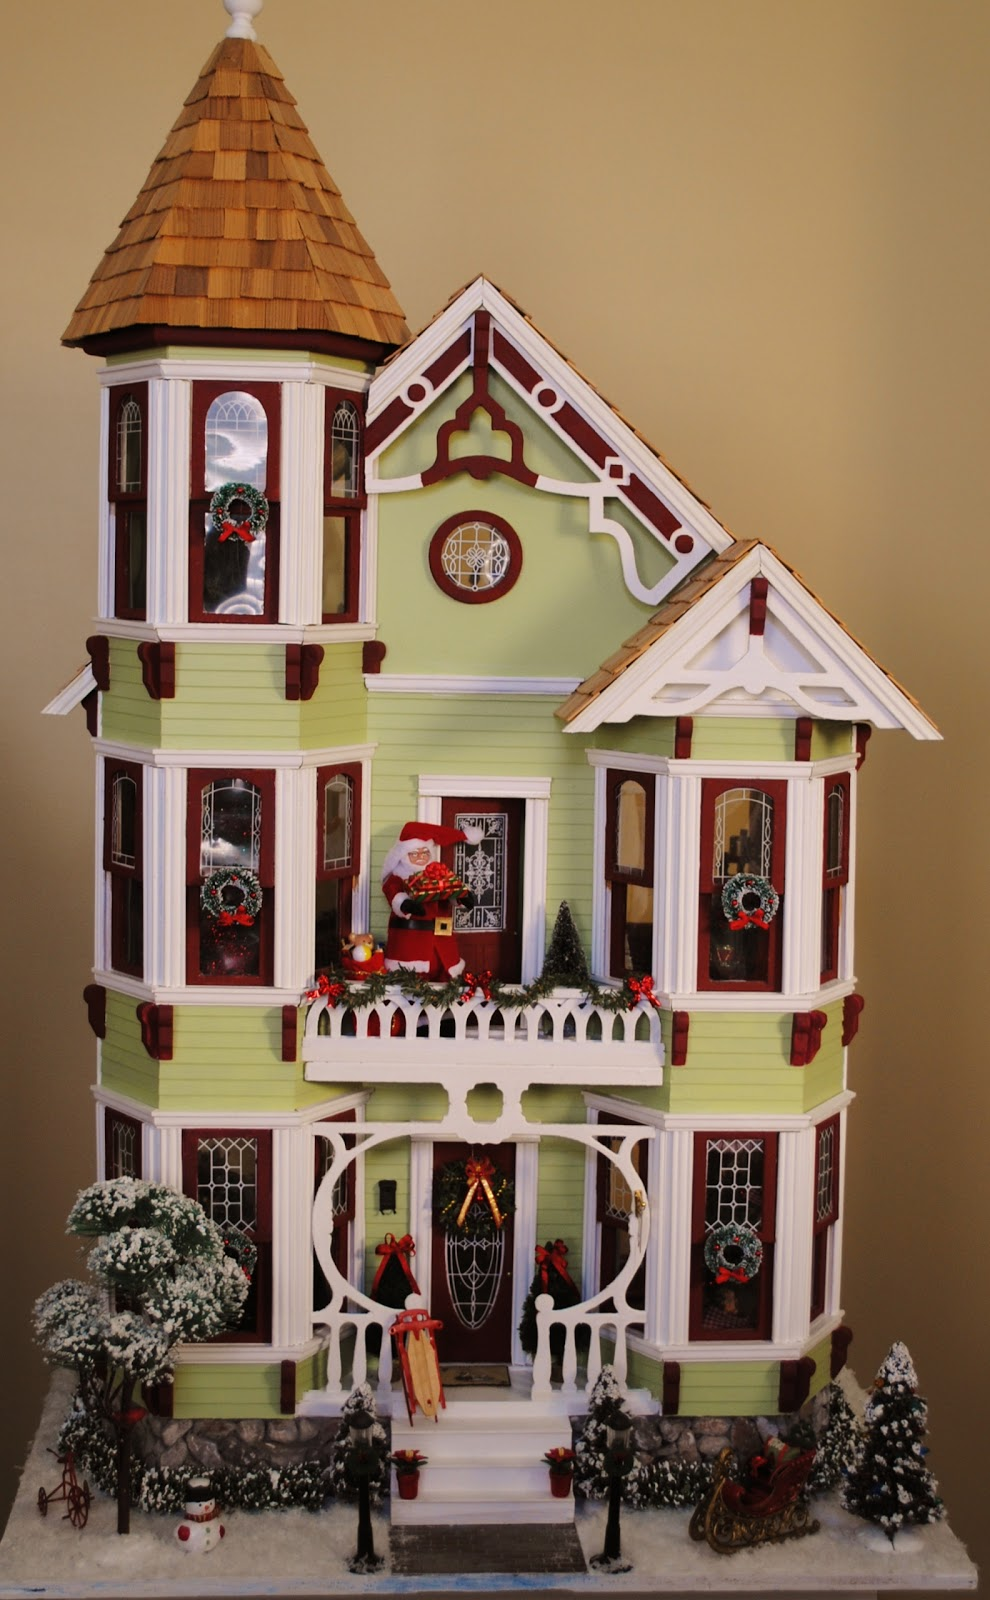 Little things by anna a merry mini christmas dollhouse for Young house love dollhouse